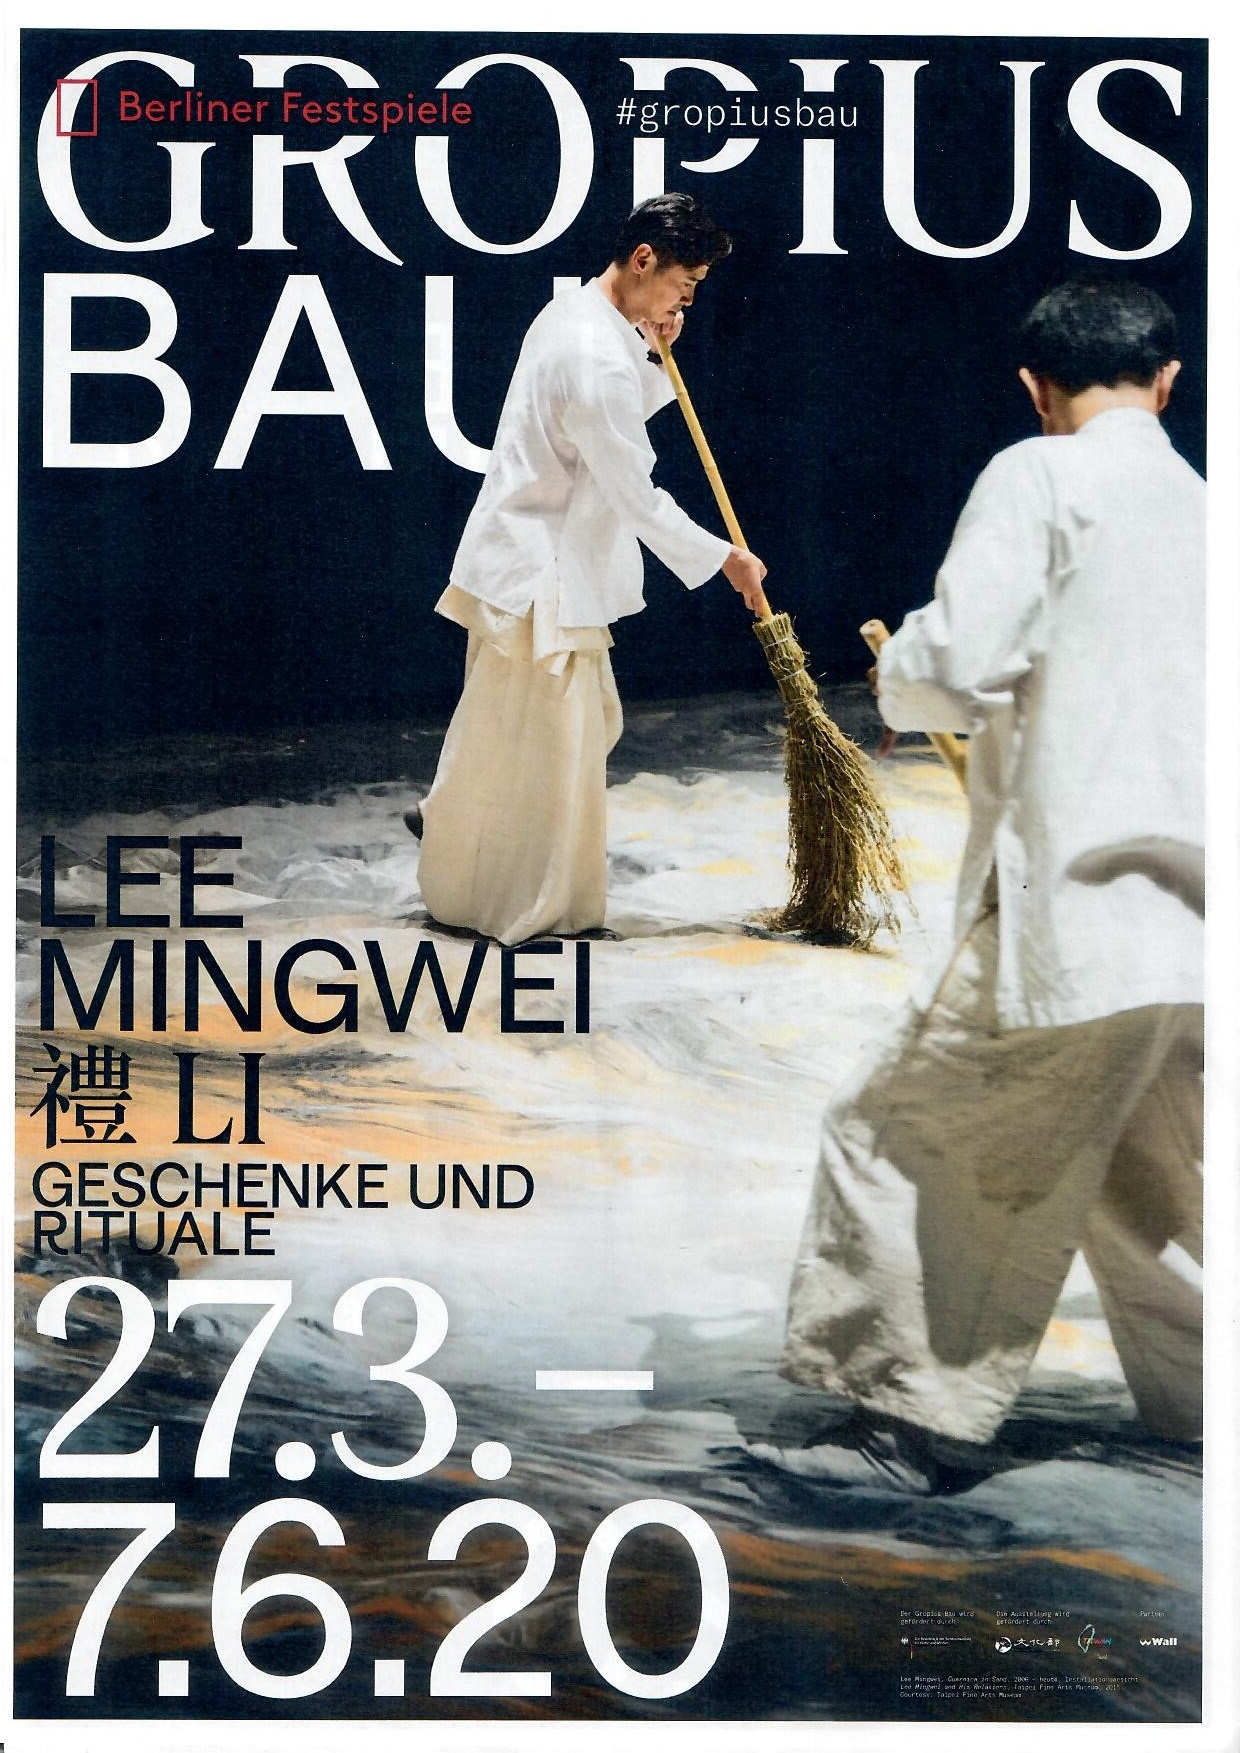 Berlin's Gropius Bau to host major Lee Mingwei retrospective